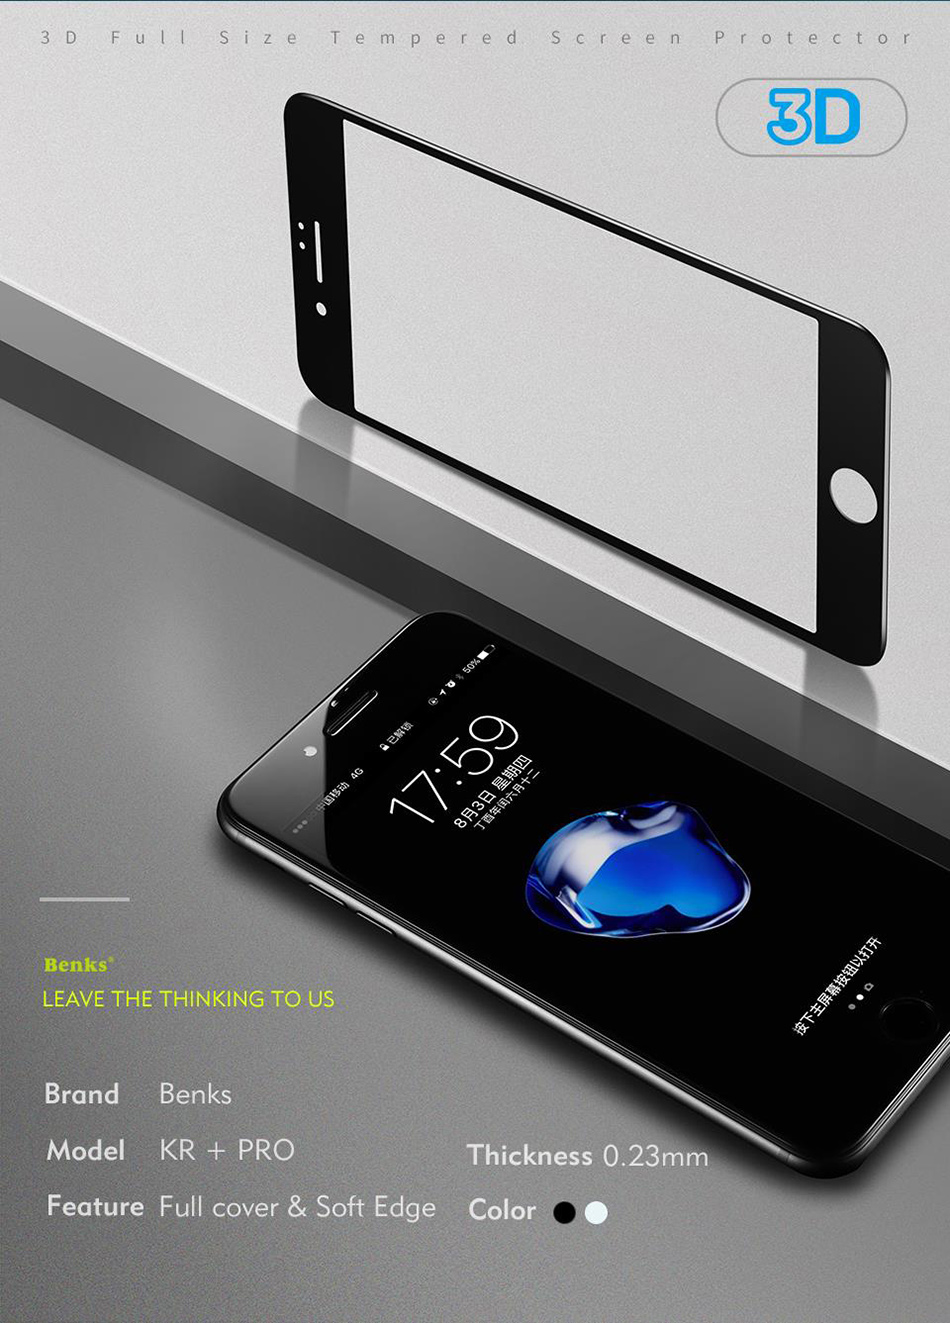 Benks 3D Tempered Glass Film For iPhone x xs Full Curved Screen Protector 0.23mm Cover Protection Front Film For iphone 8 Plus (7)